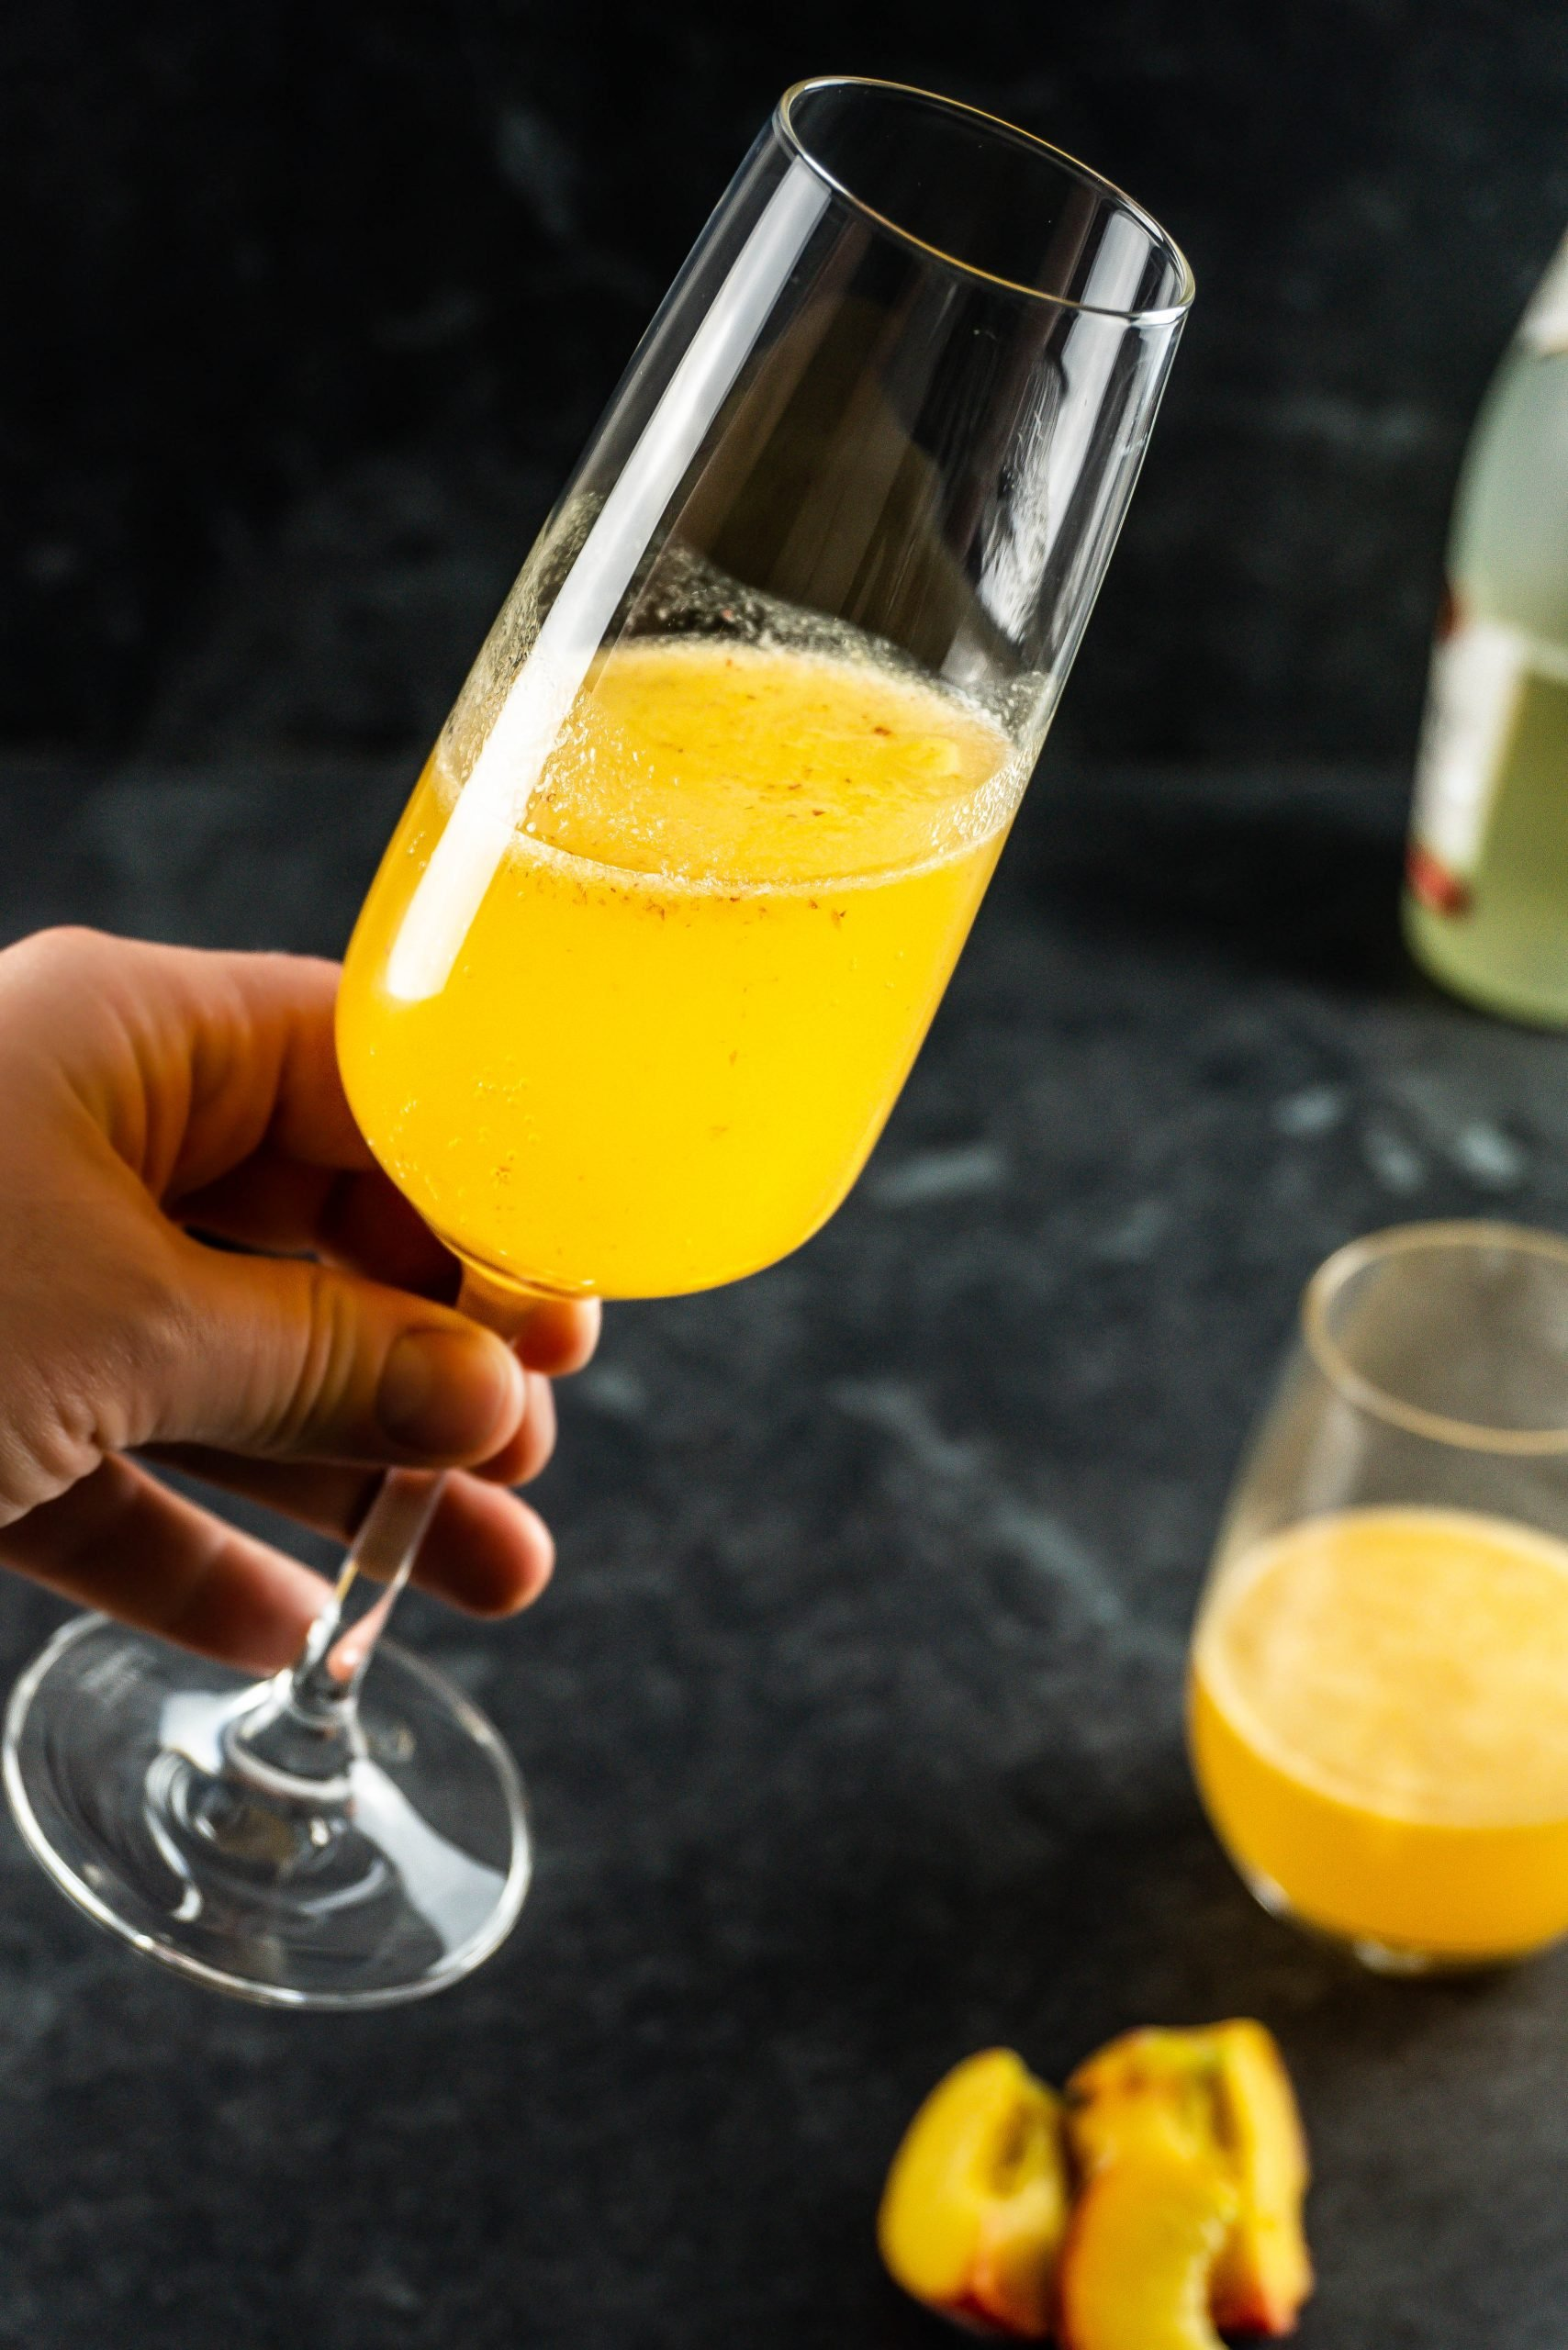 Easy Peach Bellini Cocktail in a champagne glass being held up close to the camera